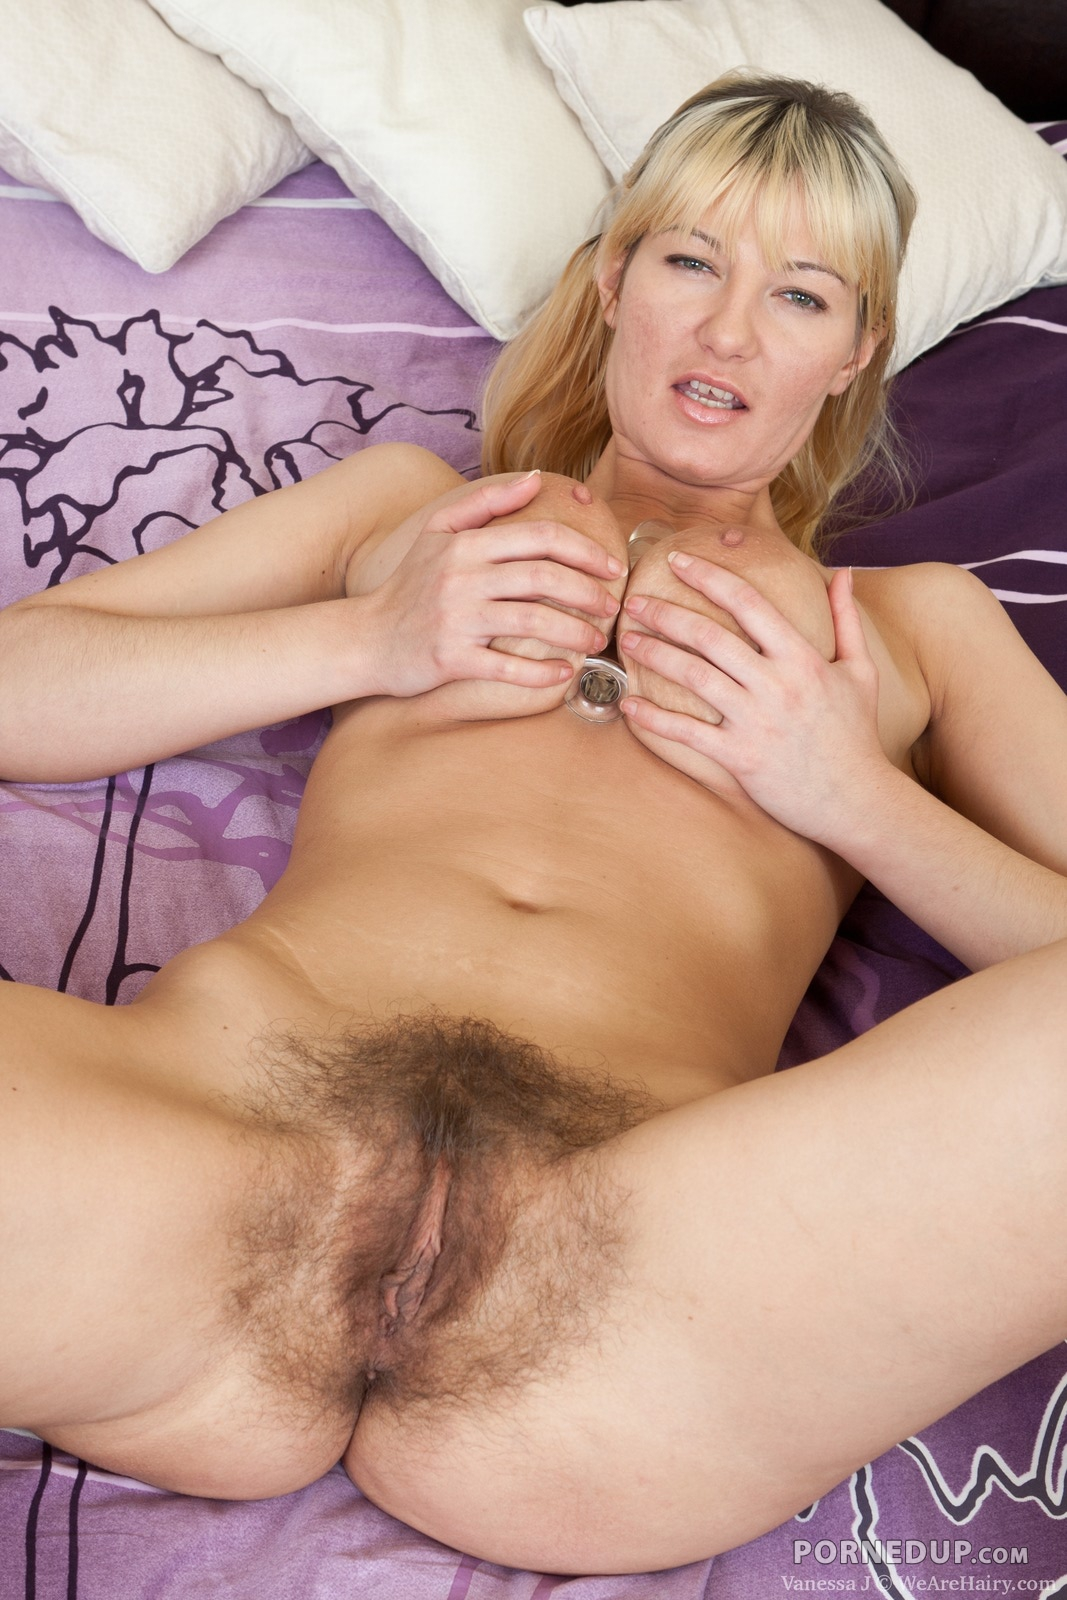 Hairy Poon - Porned Up-6387